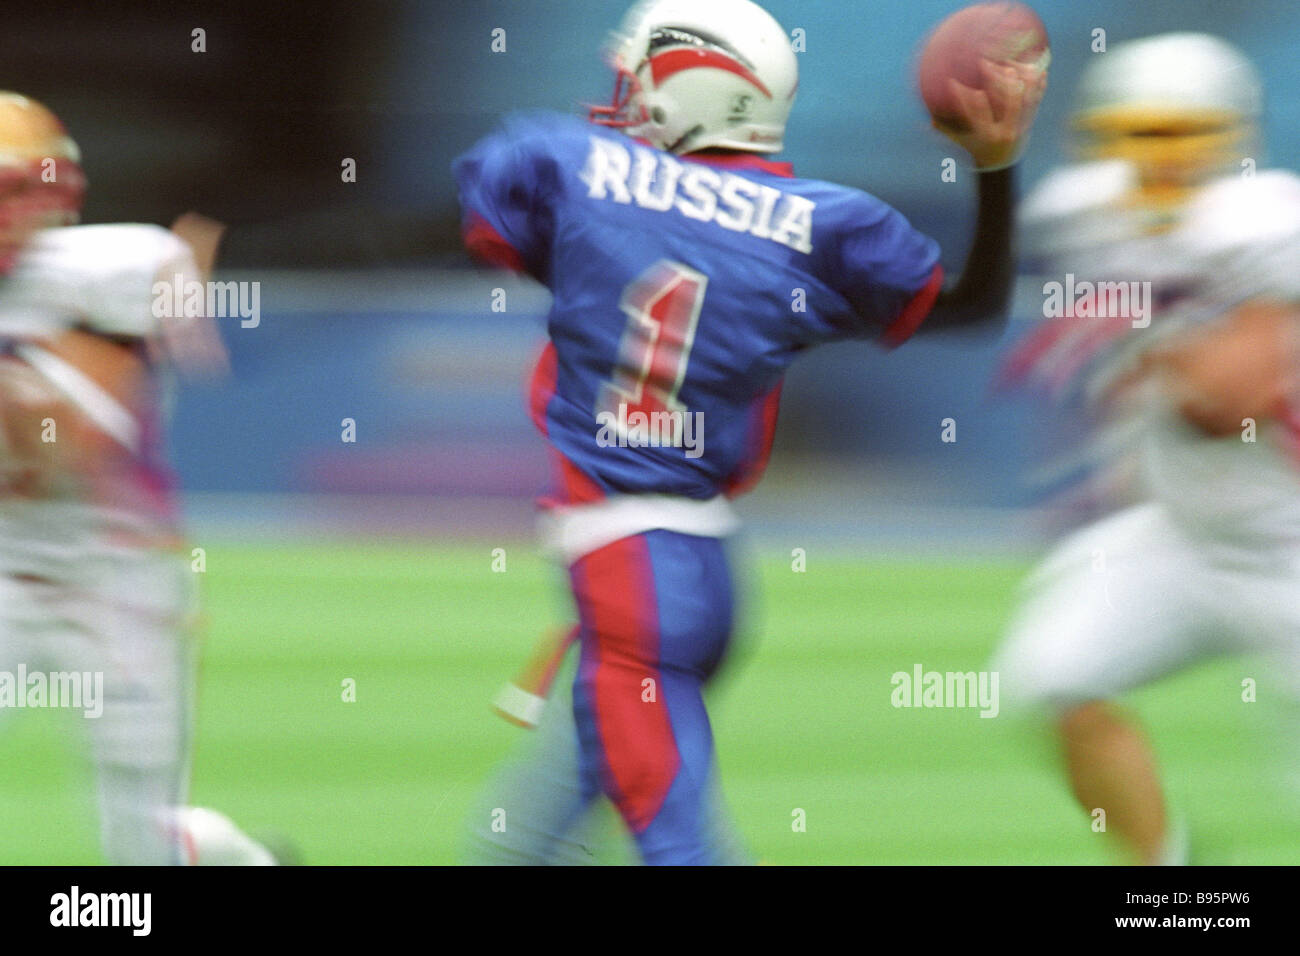 Dmitri Klemekhin No 1 of the Russian team in a meet with France at the European junior football championship - Stock Image